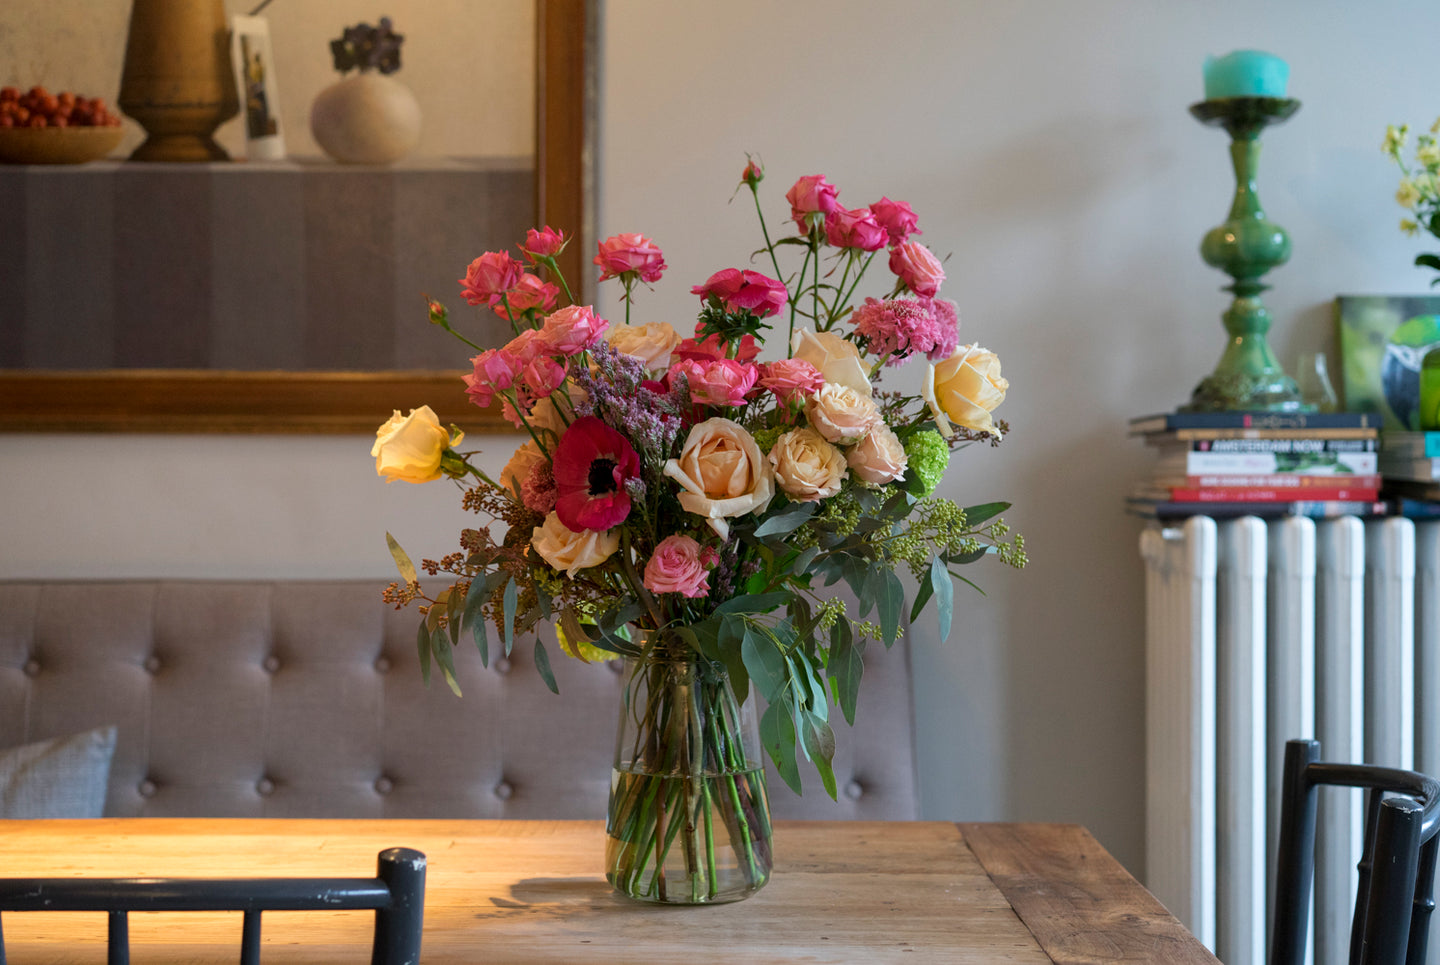 'Feature bouquet in vase' My rosy Valentine - next day delivery!